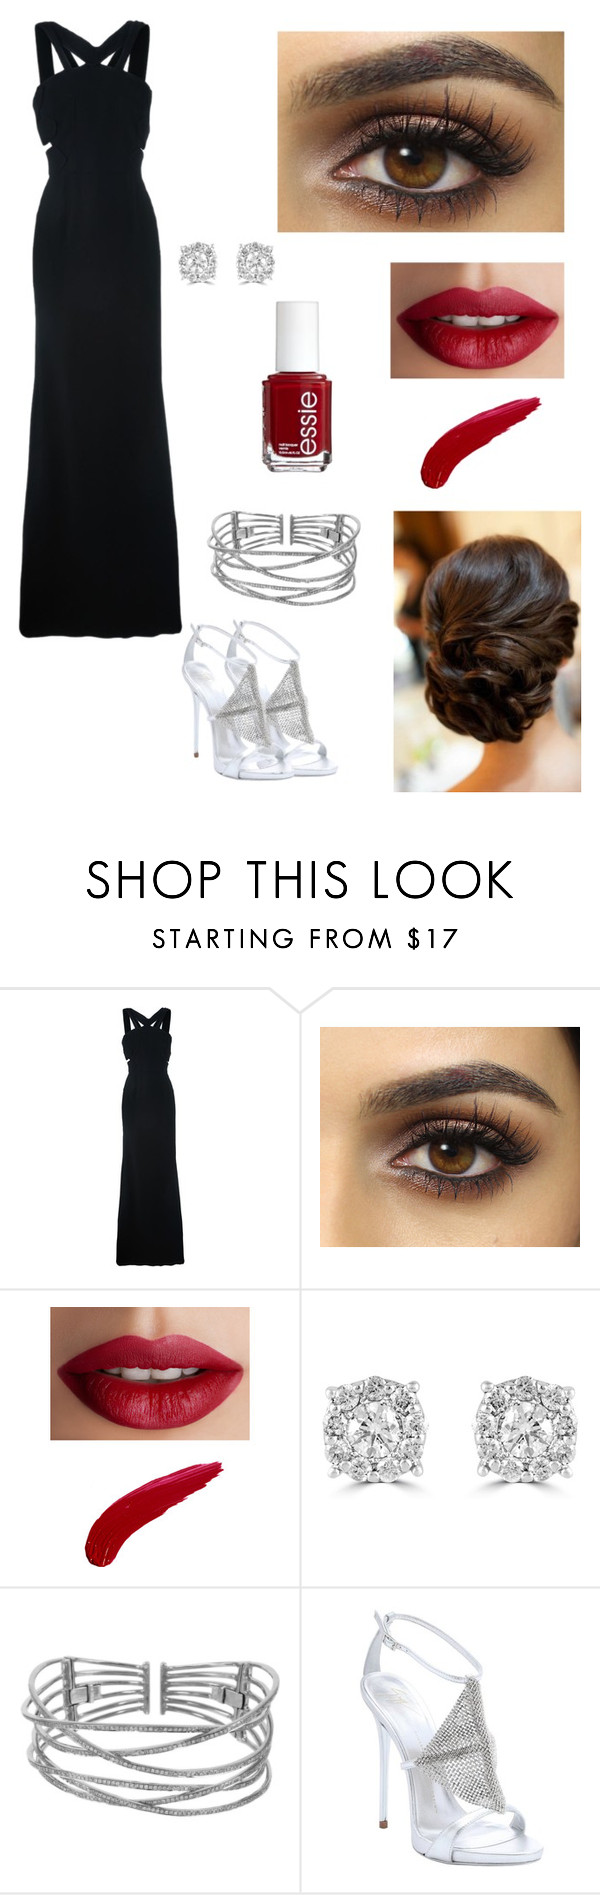 """""""Little Soldier- #1"""" by reyna27937 ❤ liked on Polyvore featuring Roland Mouret, TheBalm, Essie, Effy Jewelry, Plukka and Giuseppe Zanotti"""